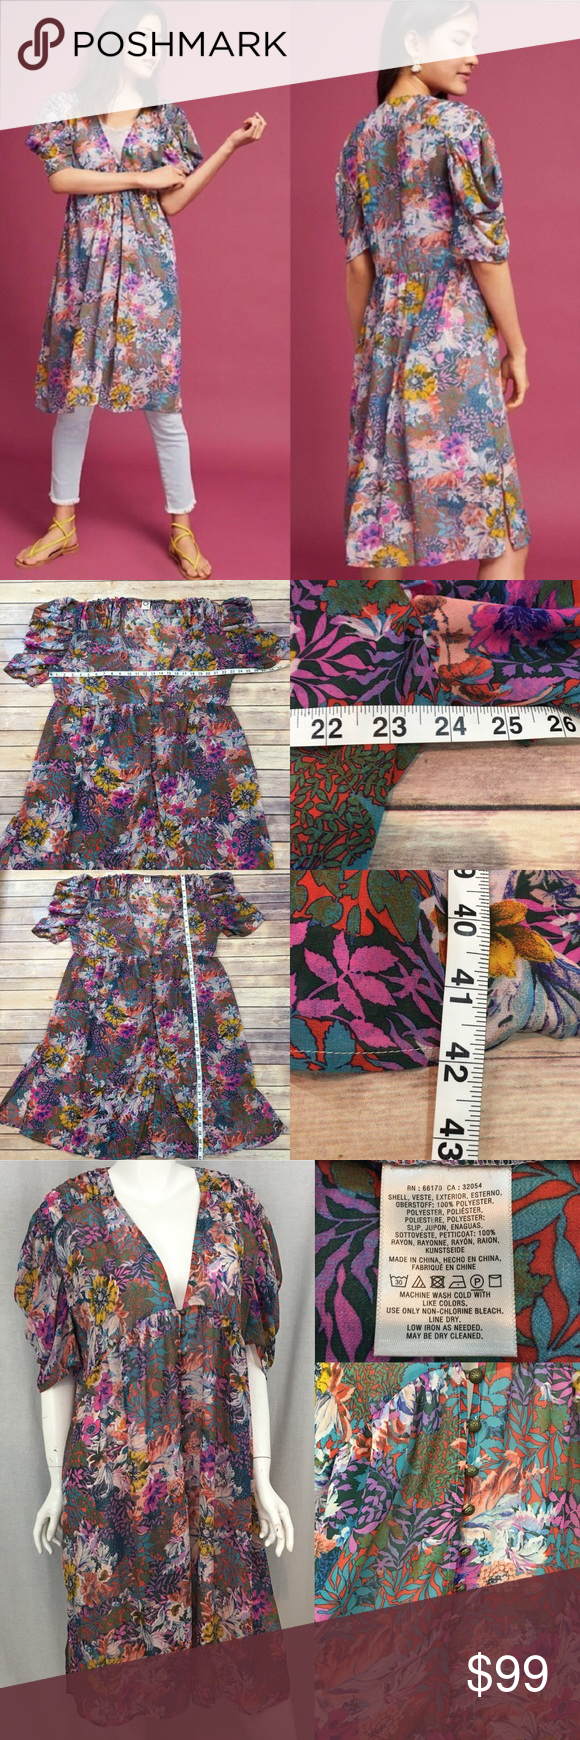 7dceb24a9408 Size XL Anthro Akemi Kin Valencia Boho Sheer Dress • Measurements are in  photos • Material